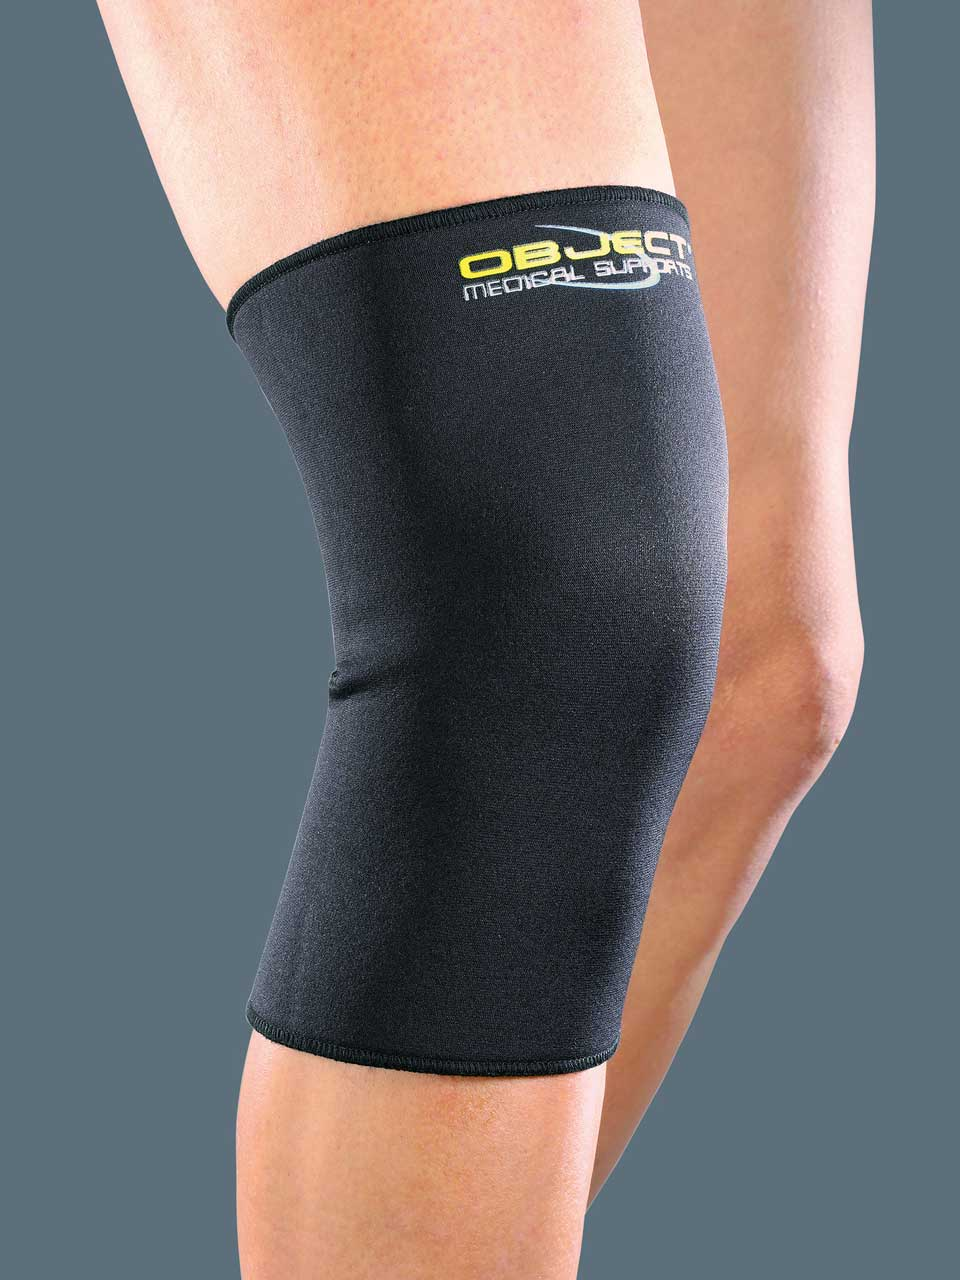 OBJECT - Tubular knee support